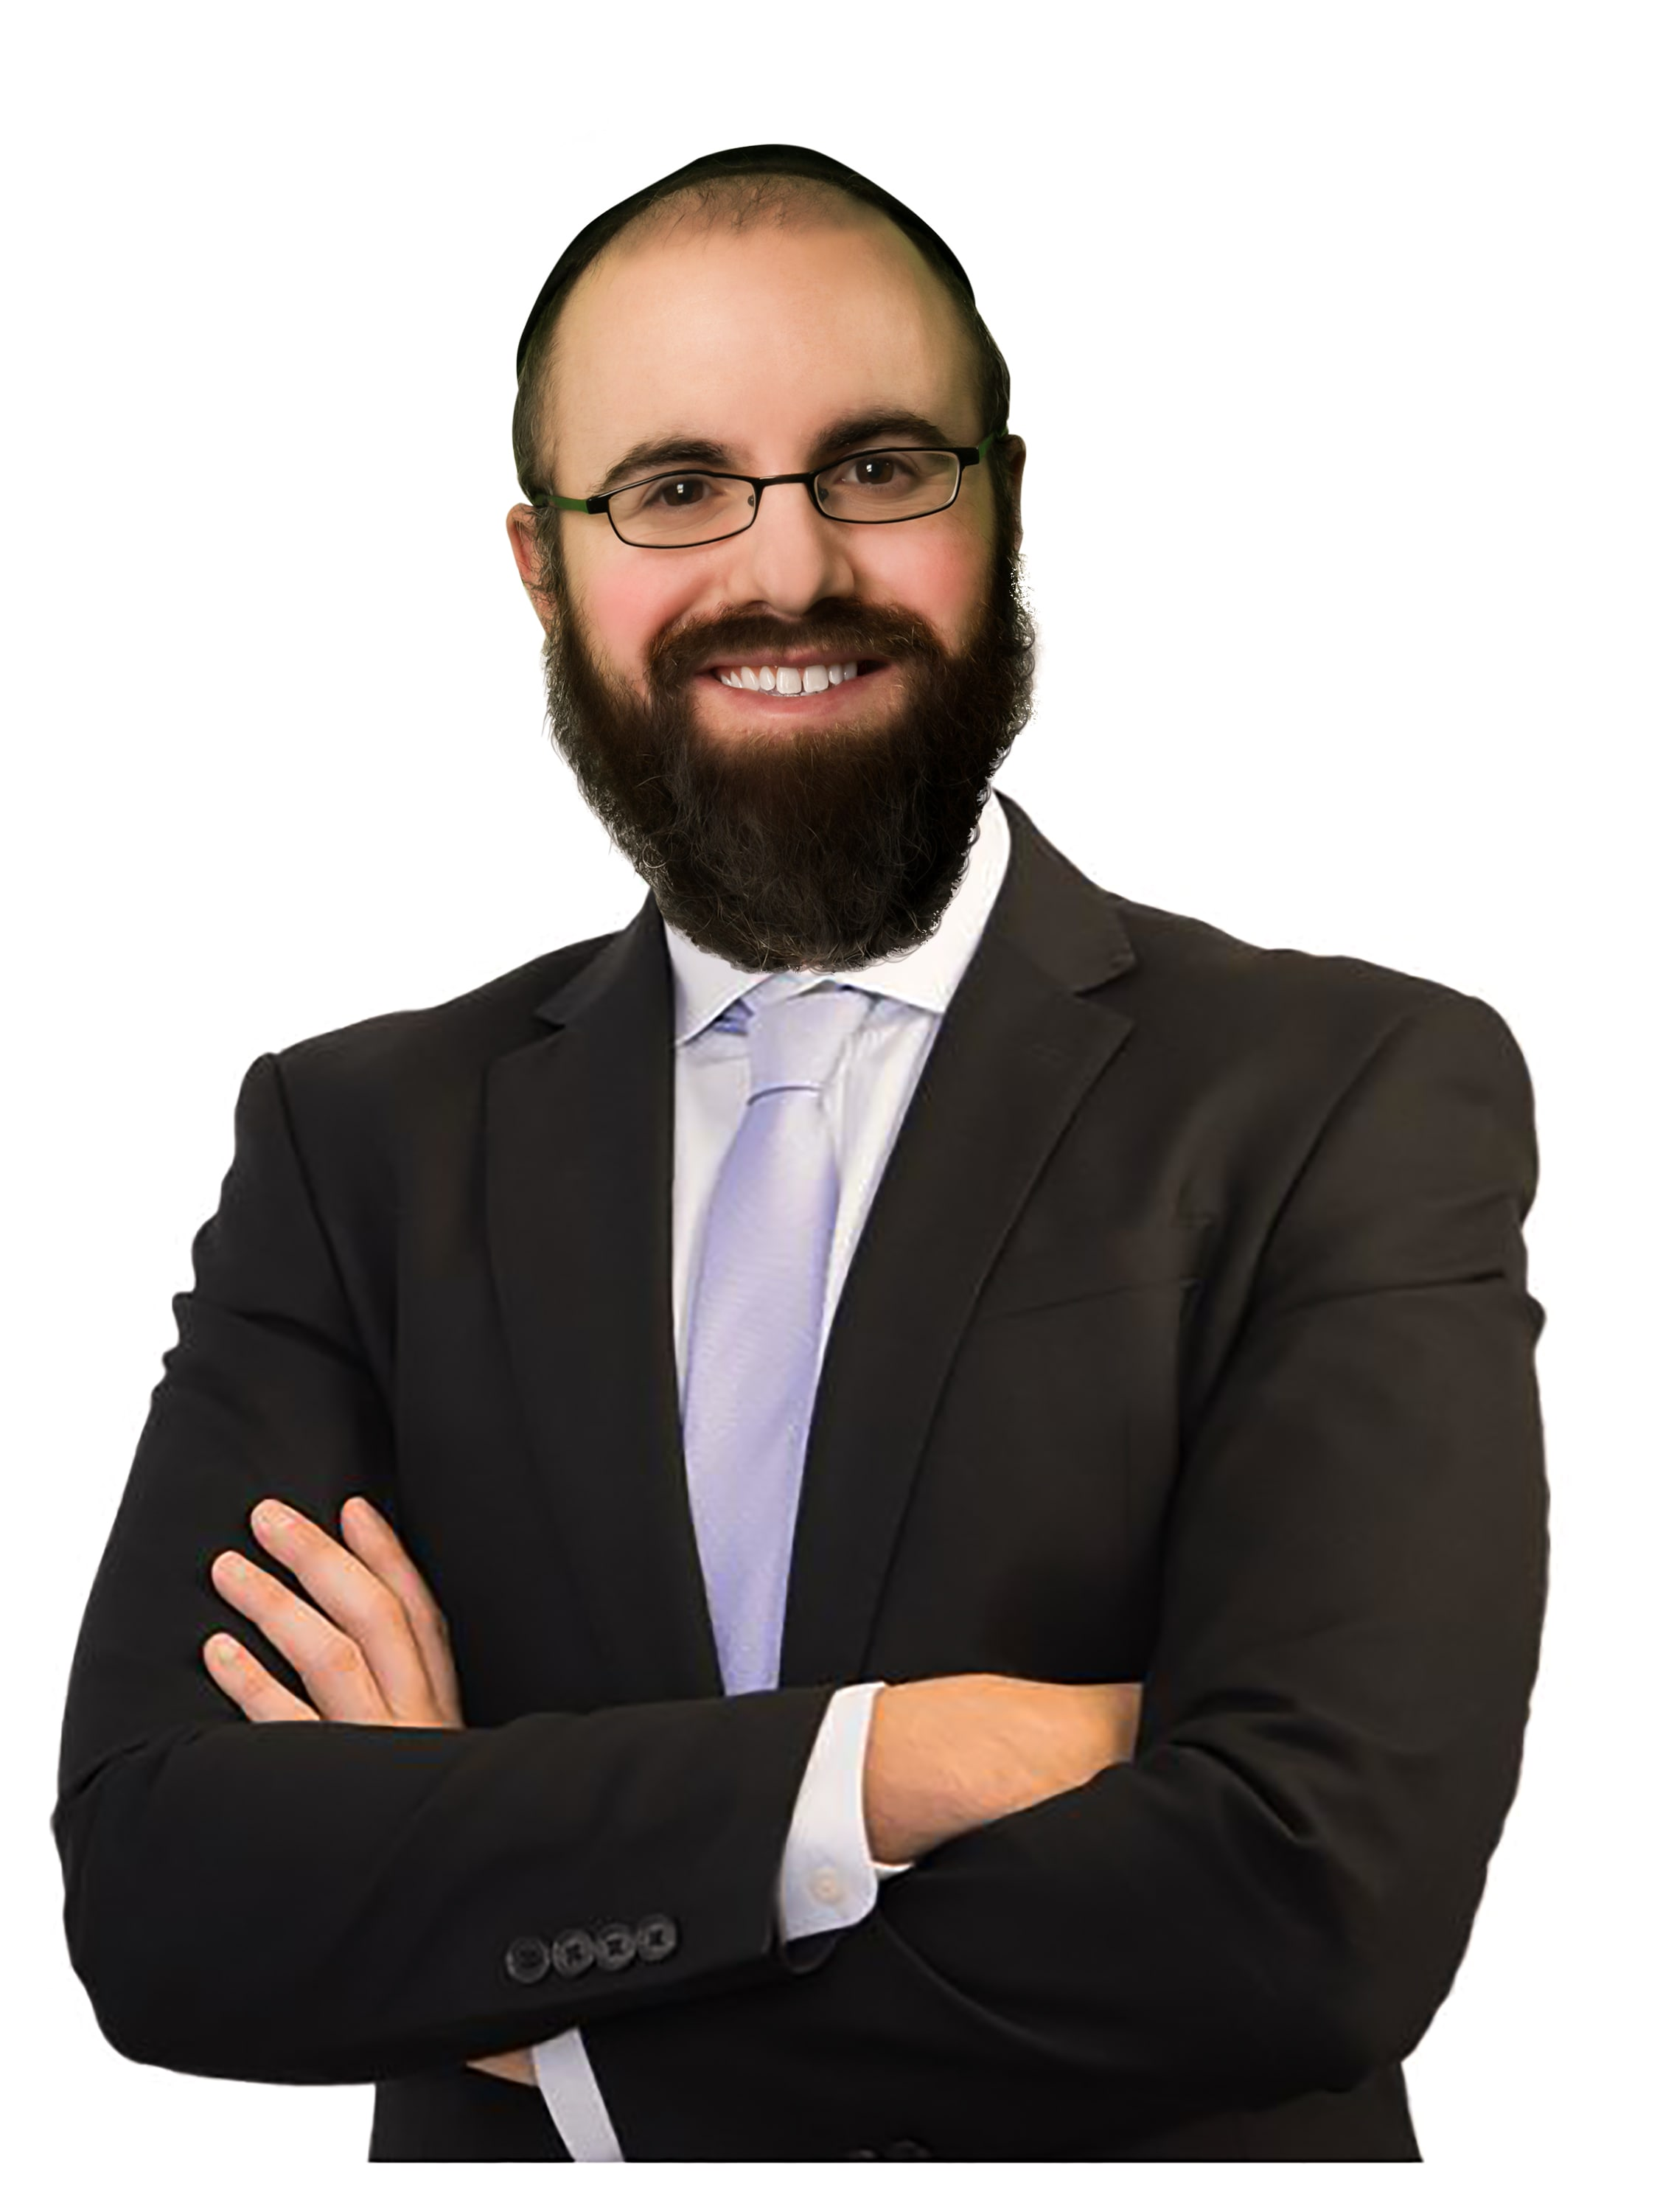 Dov Golberg, Founder and CEO BIG Law Group